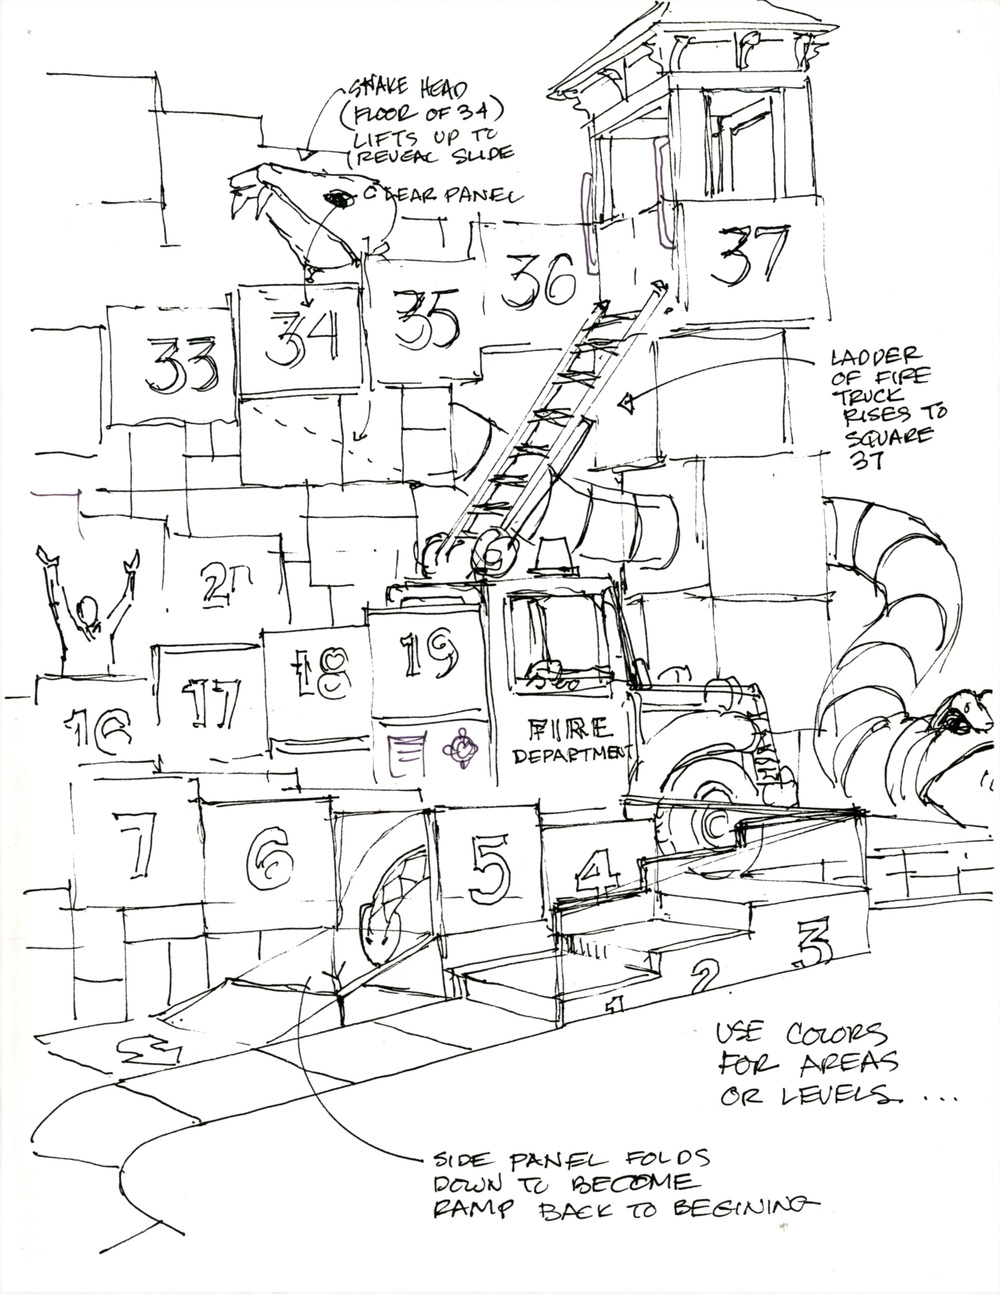 Snakes and Ladders_Game Show_149.jpg